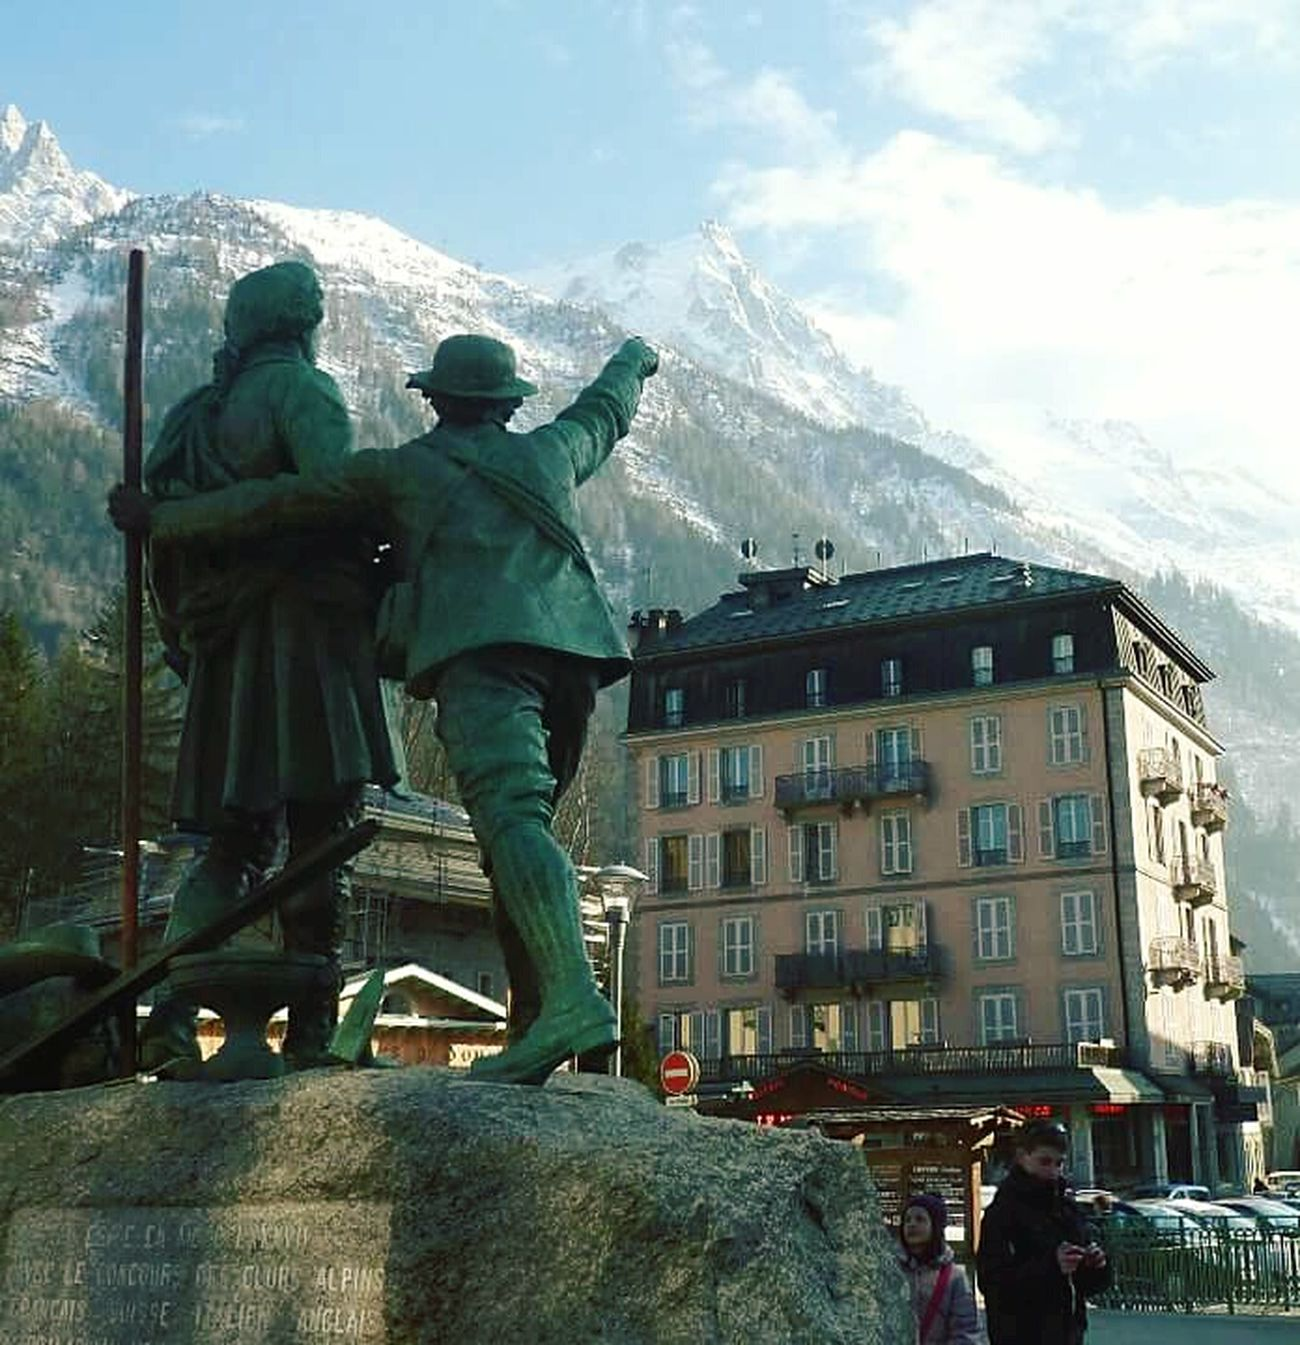 Chamonix-Mont-Blanc Look At This Moutains French Alps My Country In A Photo Street Sculpture Expressive Sculpture Chamonix Mountain Climbing